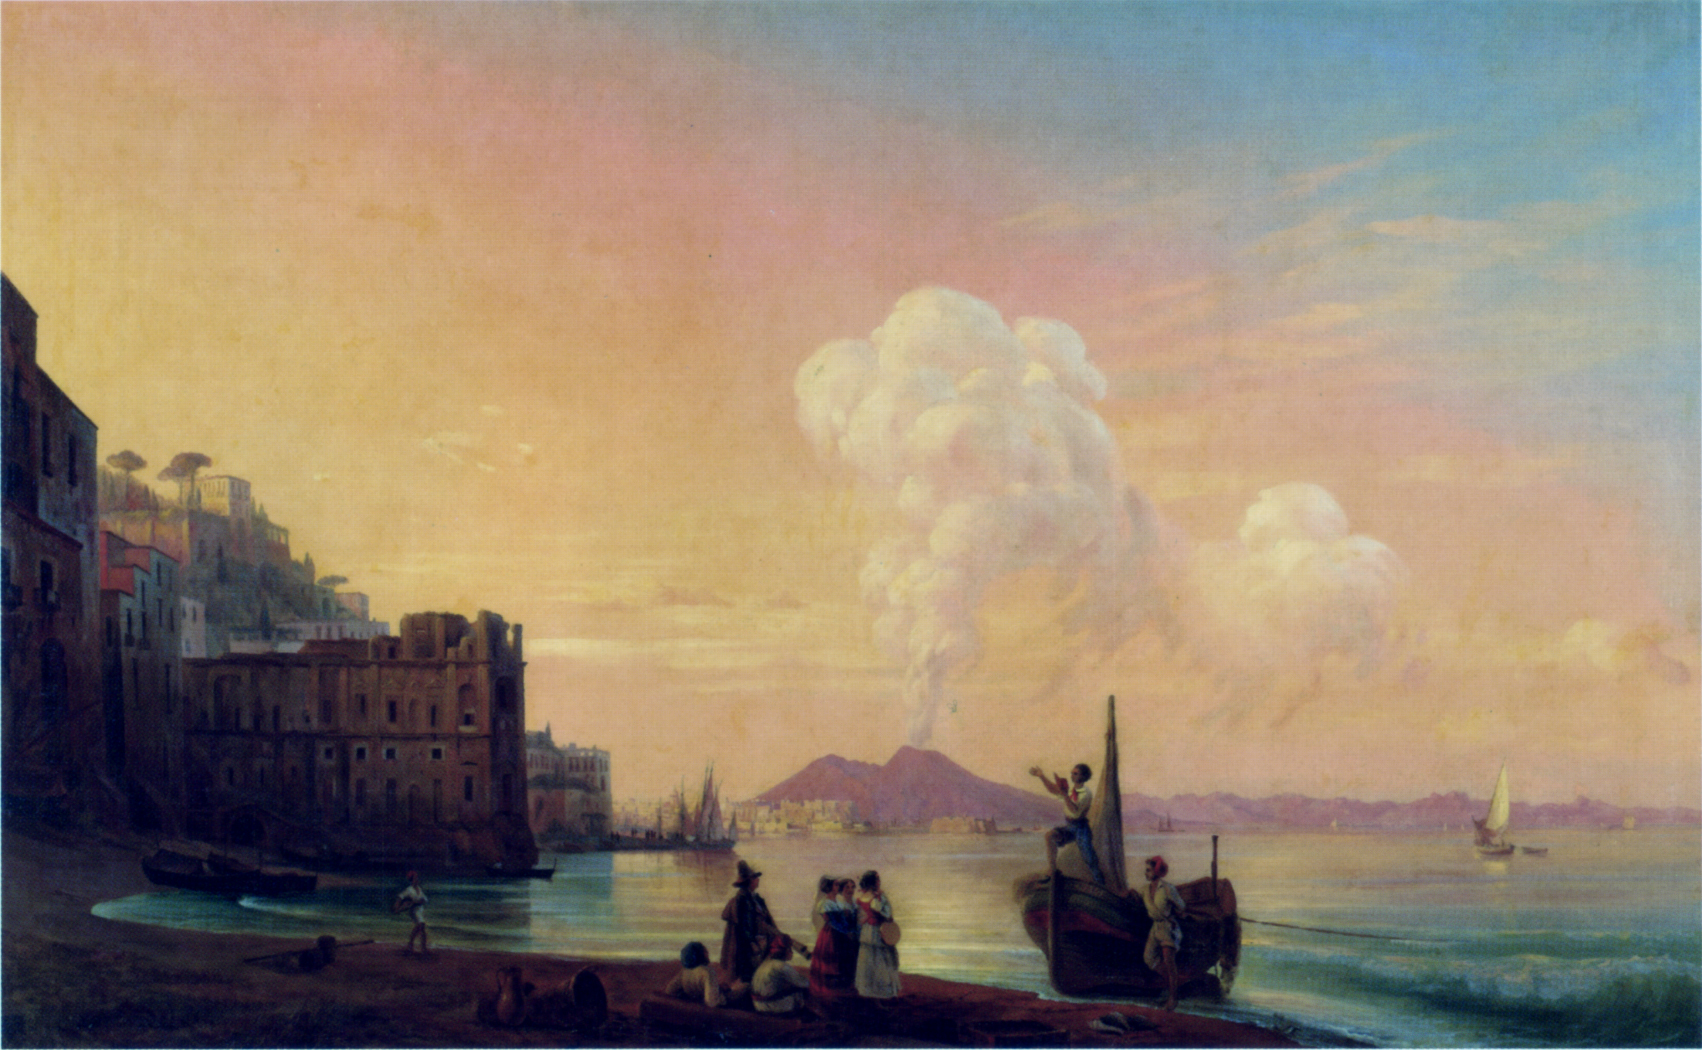 Bay of Naples, 1845